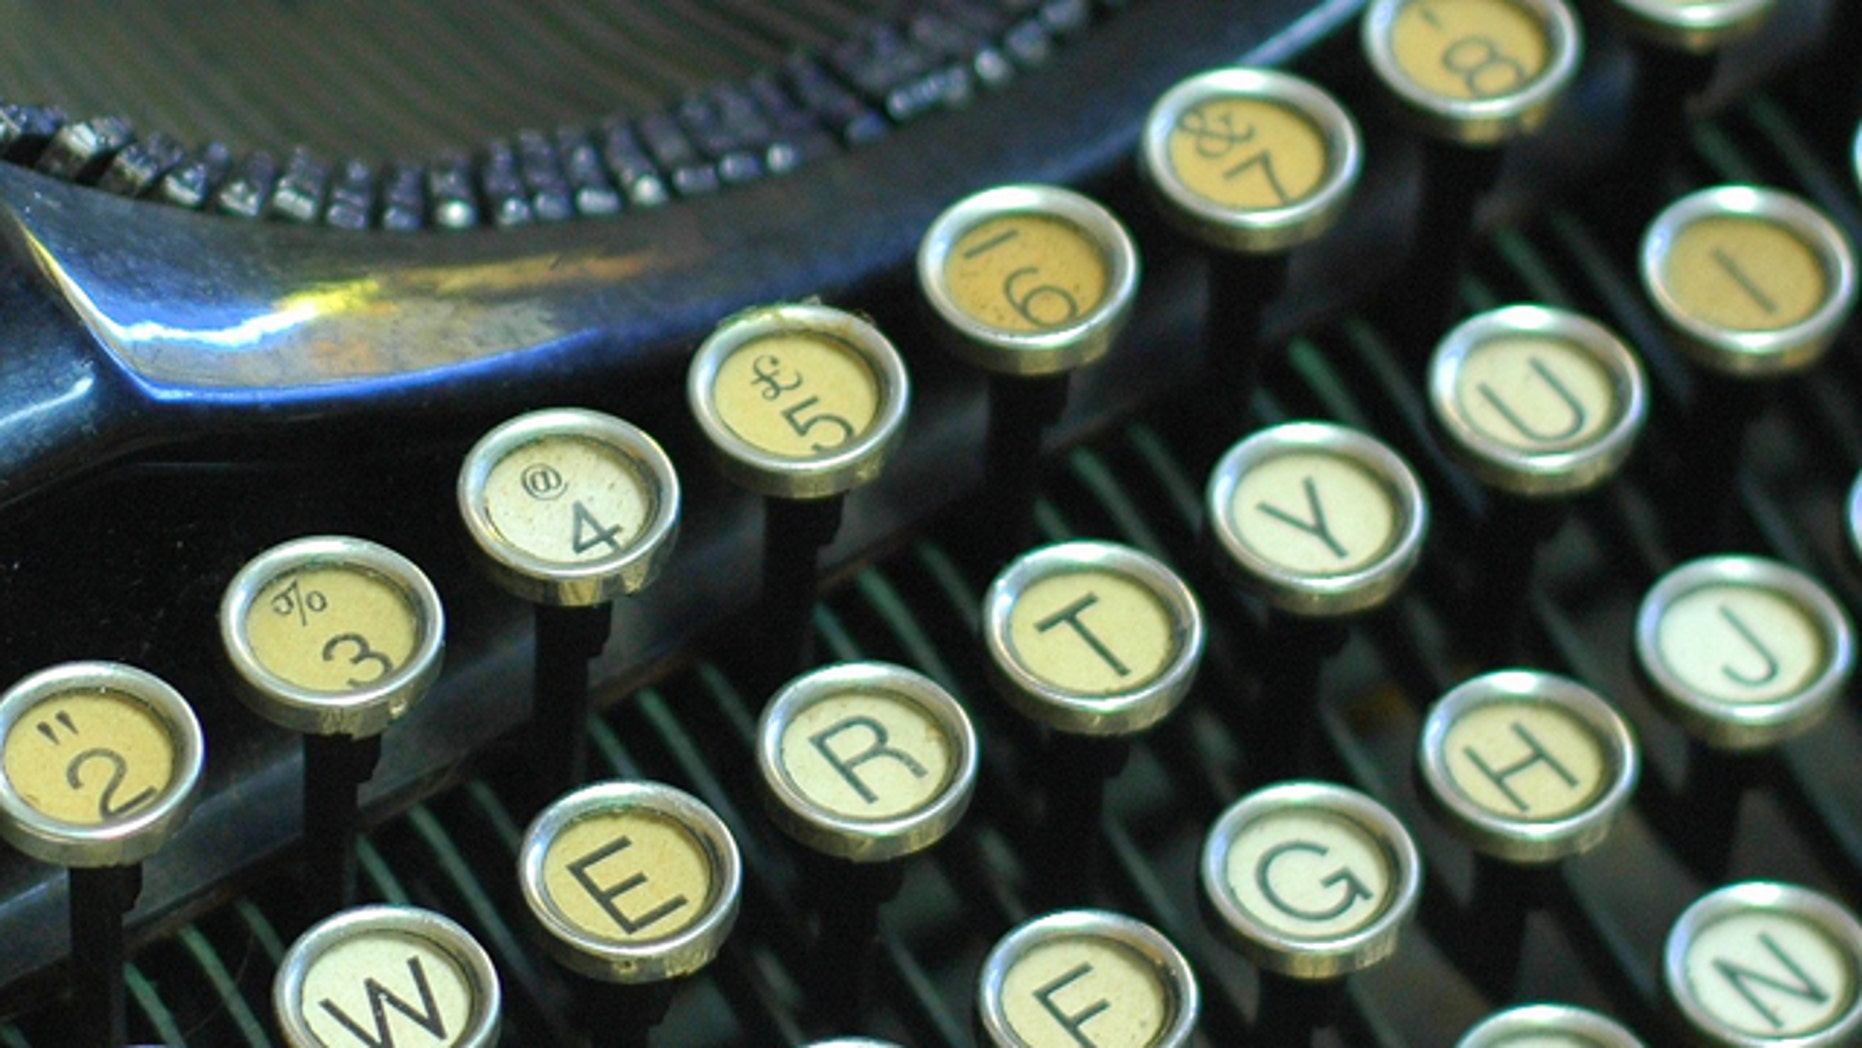 A close up photo of the keys on a vintage Underwood portable typewriter.